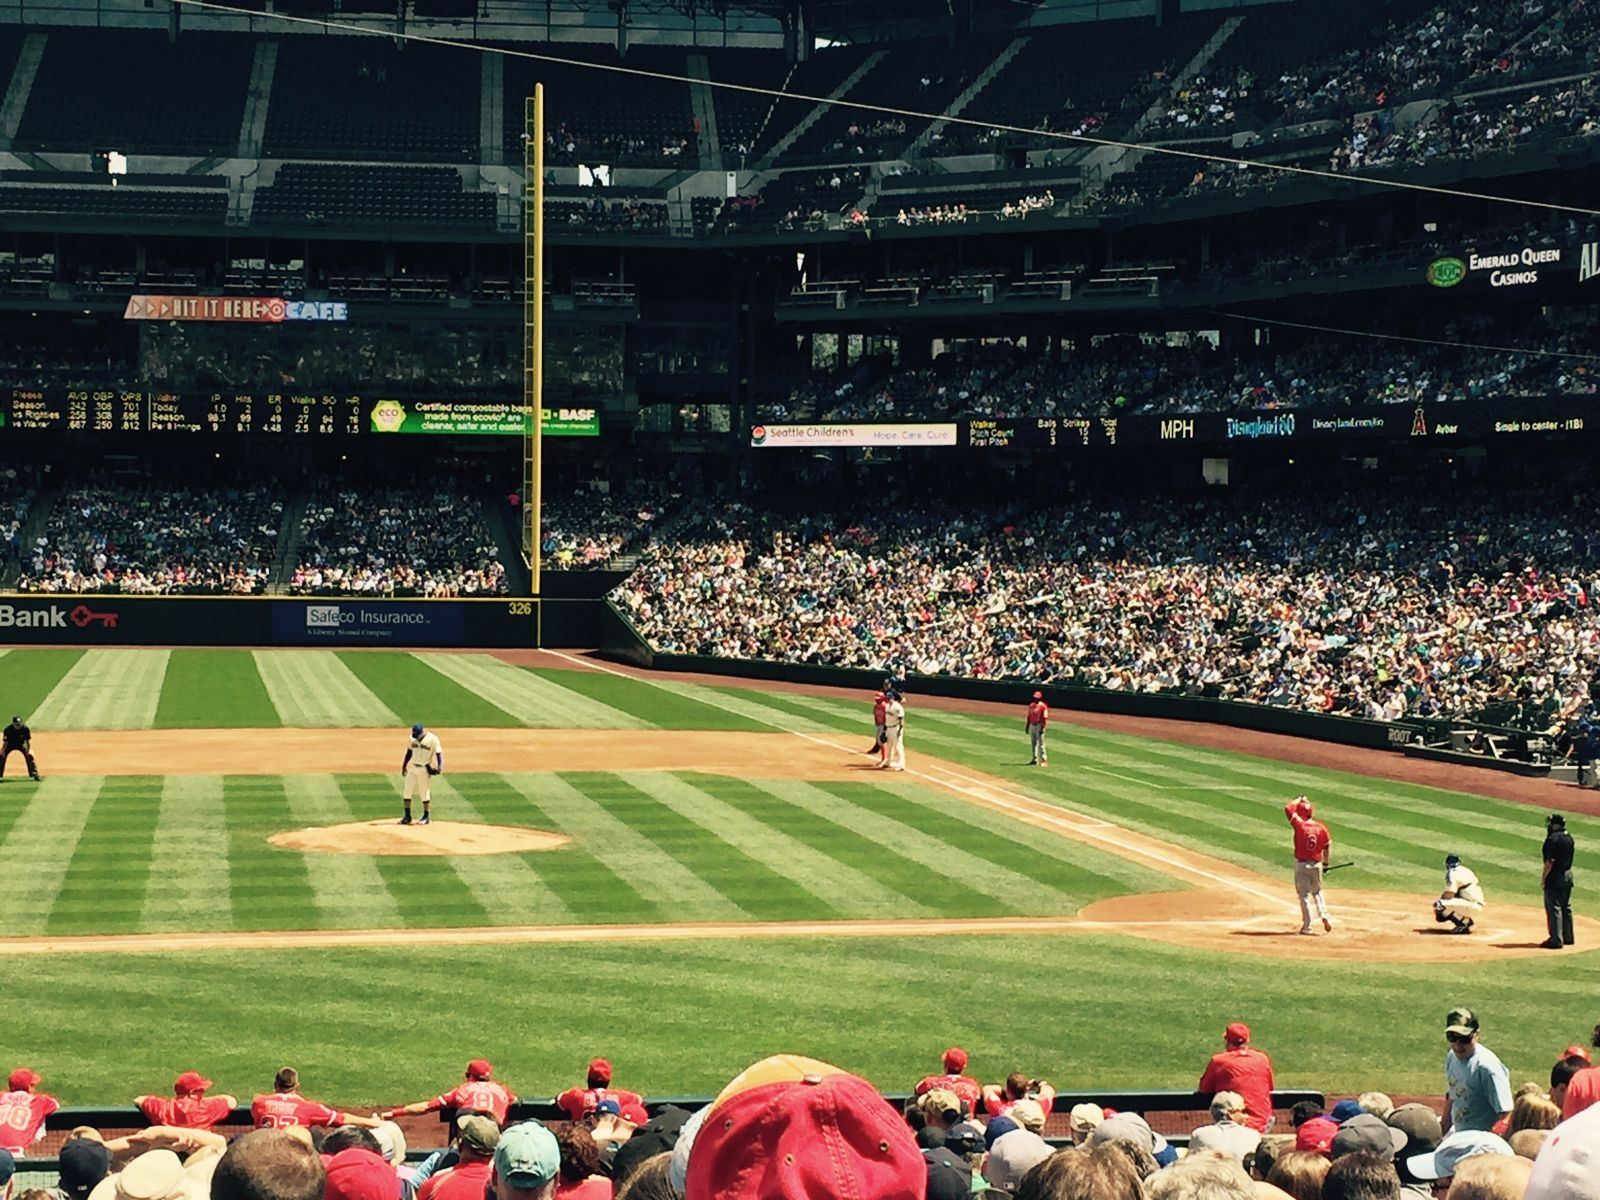 Safeco Field : Row 28